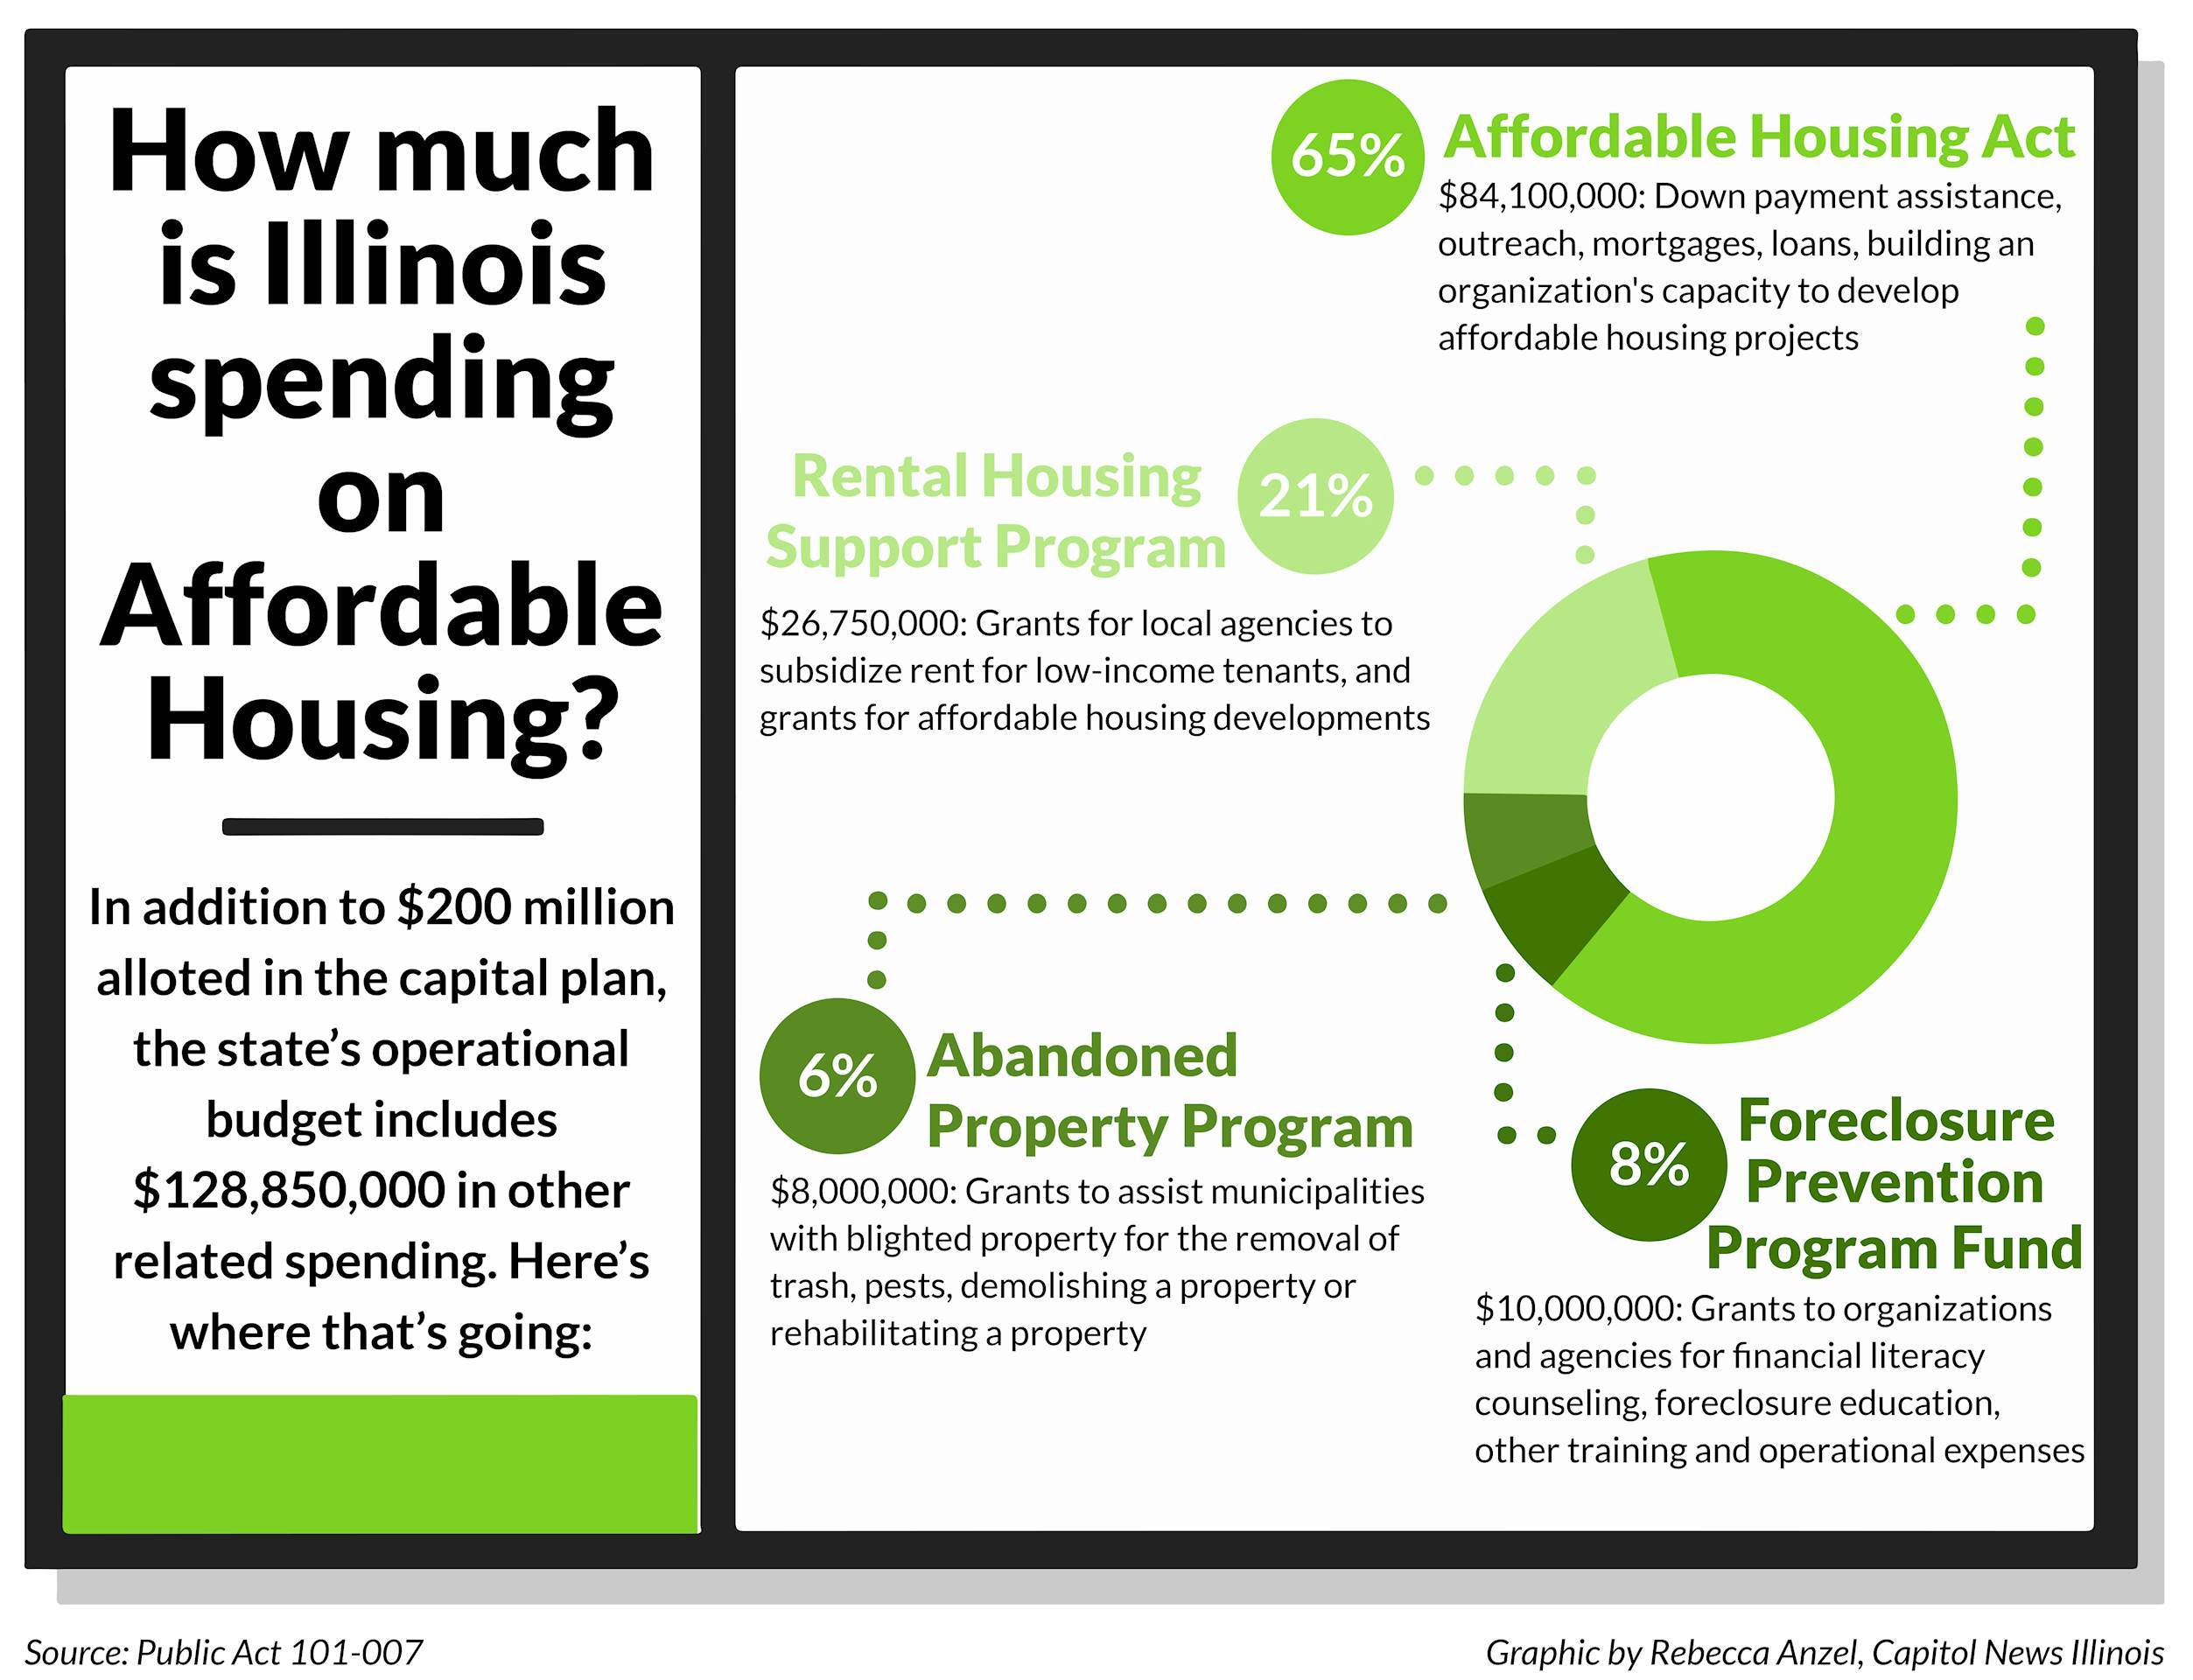 Affordable Housing Funding Infographic